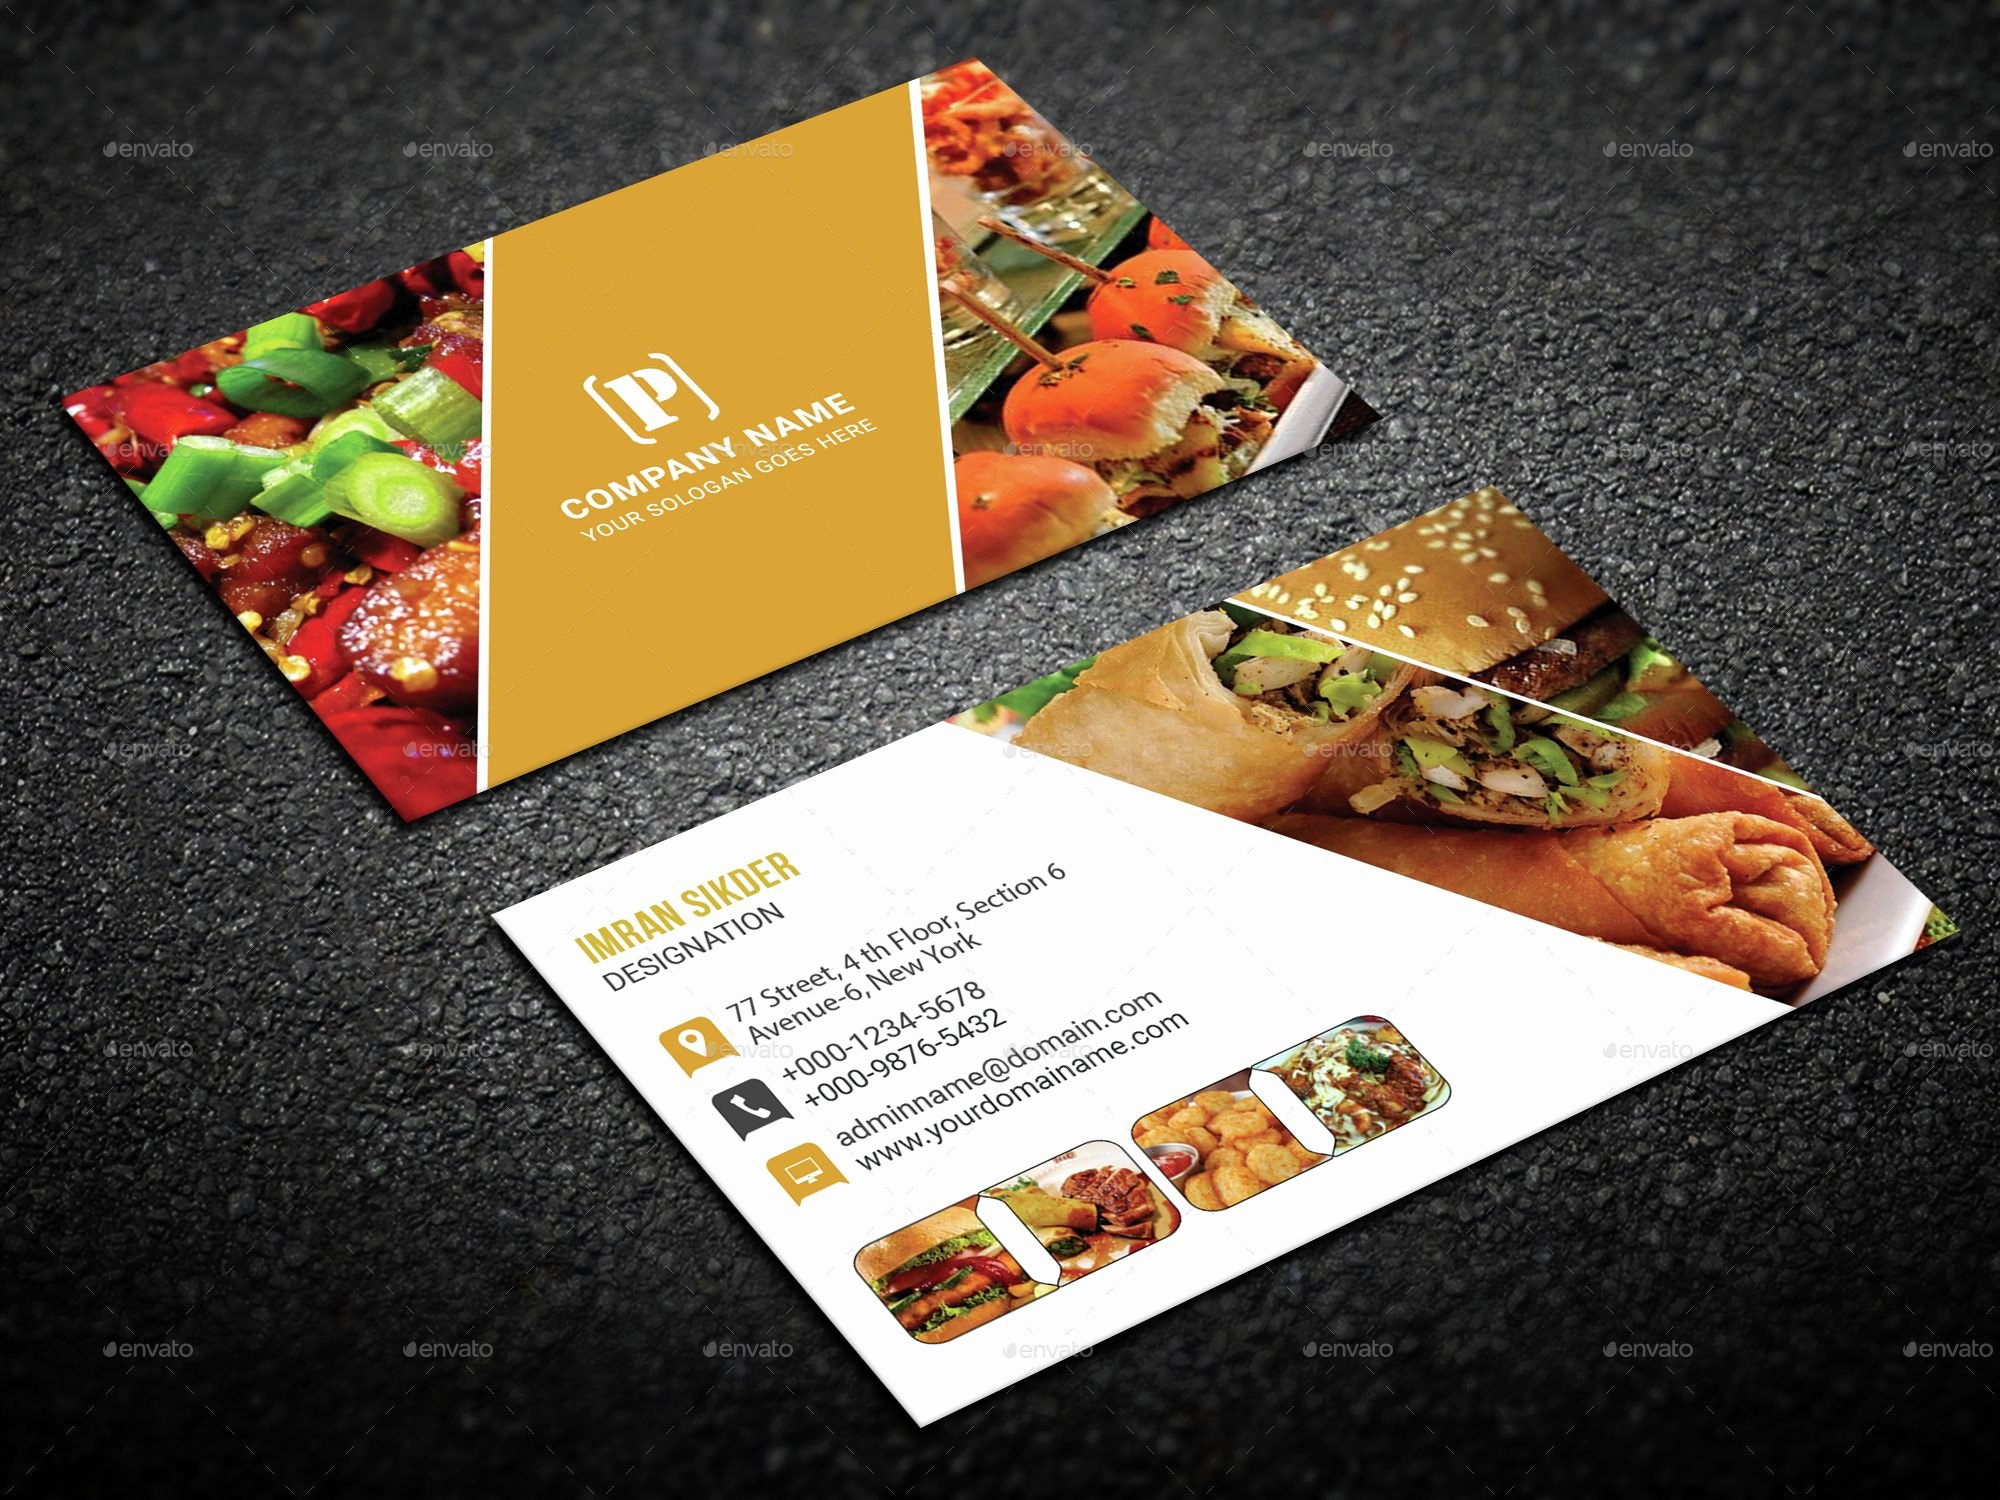 Catering Business Card Ideas Unique Restaurant Business Cards